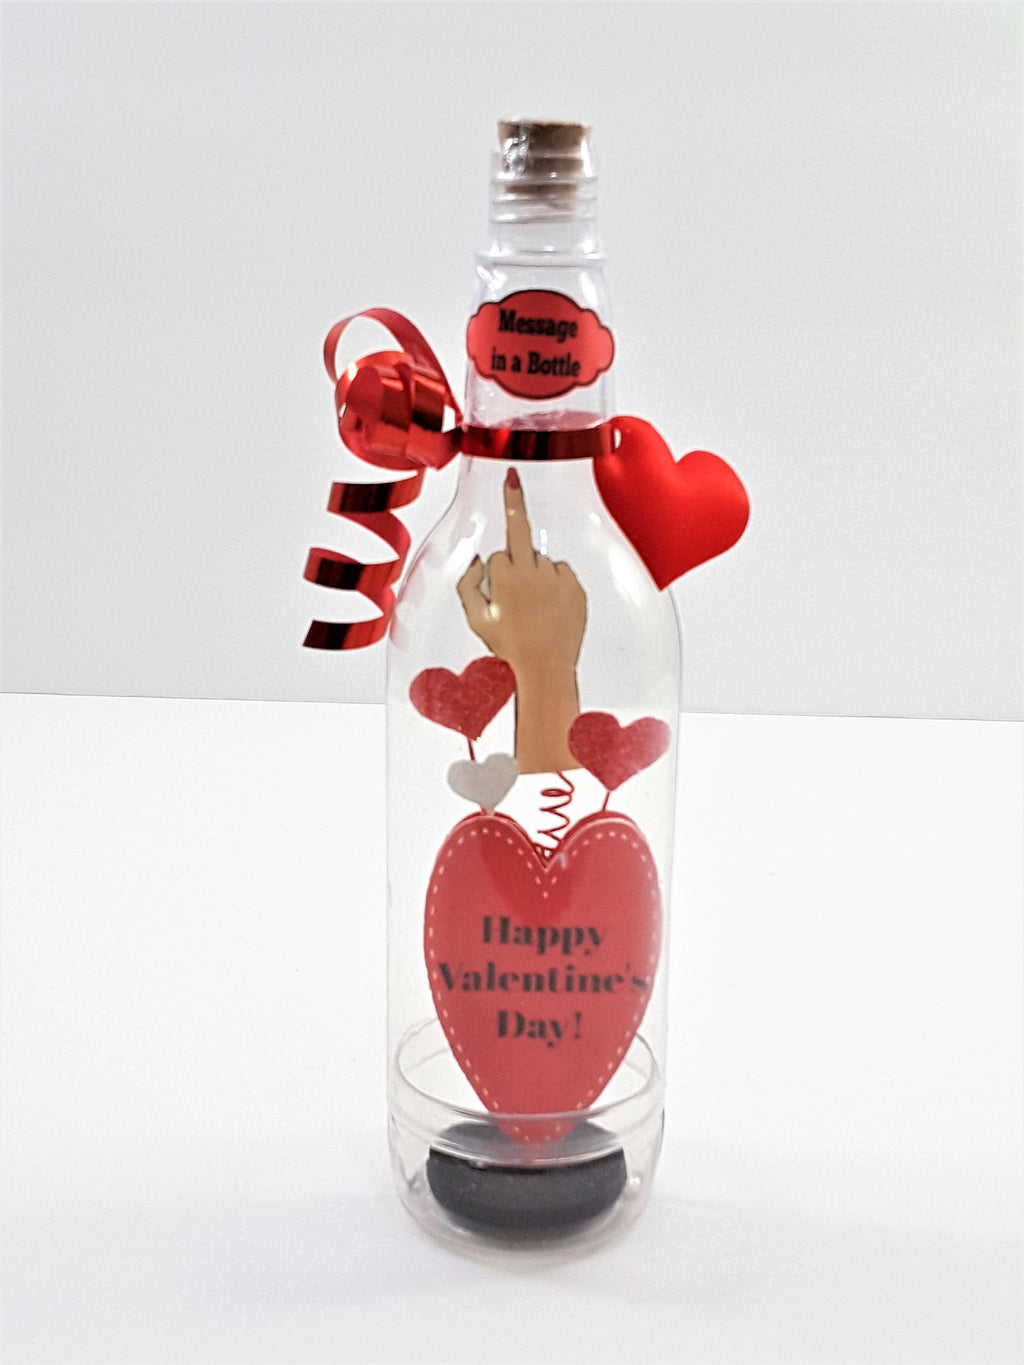 MESSAGE IN A BOTTLE VALENTINE'S DAY MIDDLE FINGER SOLUTE